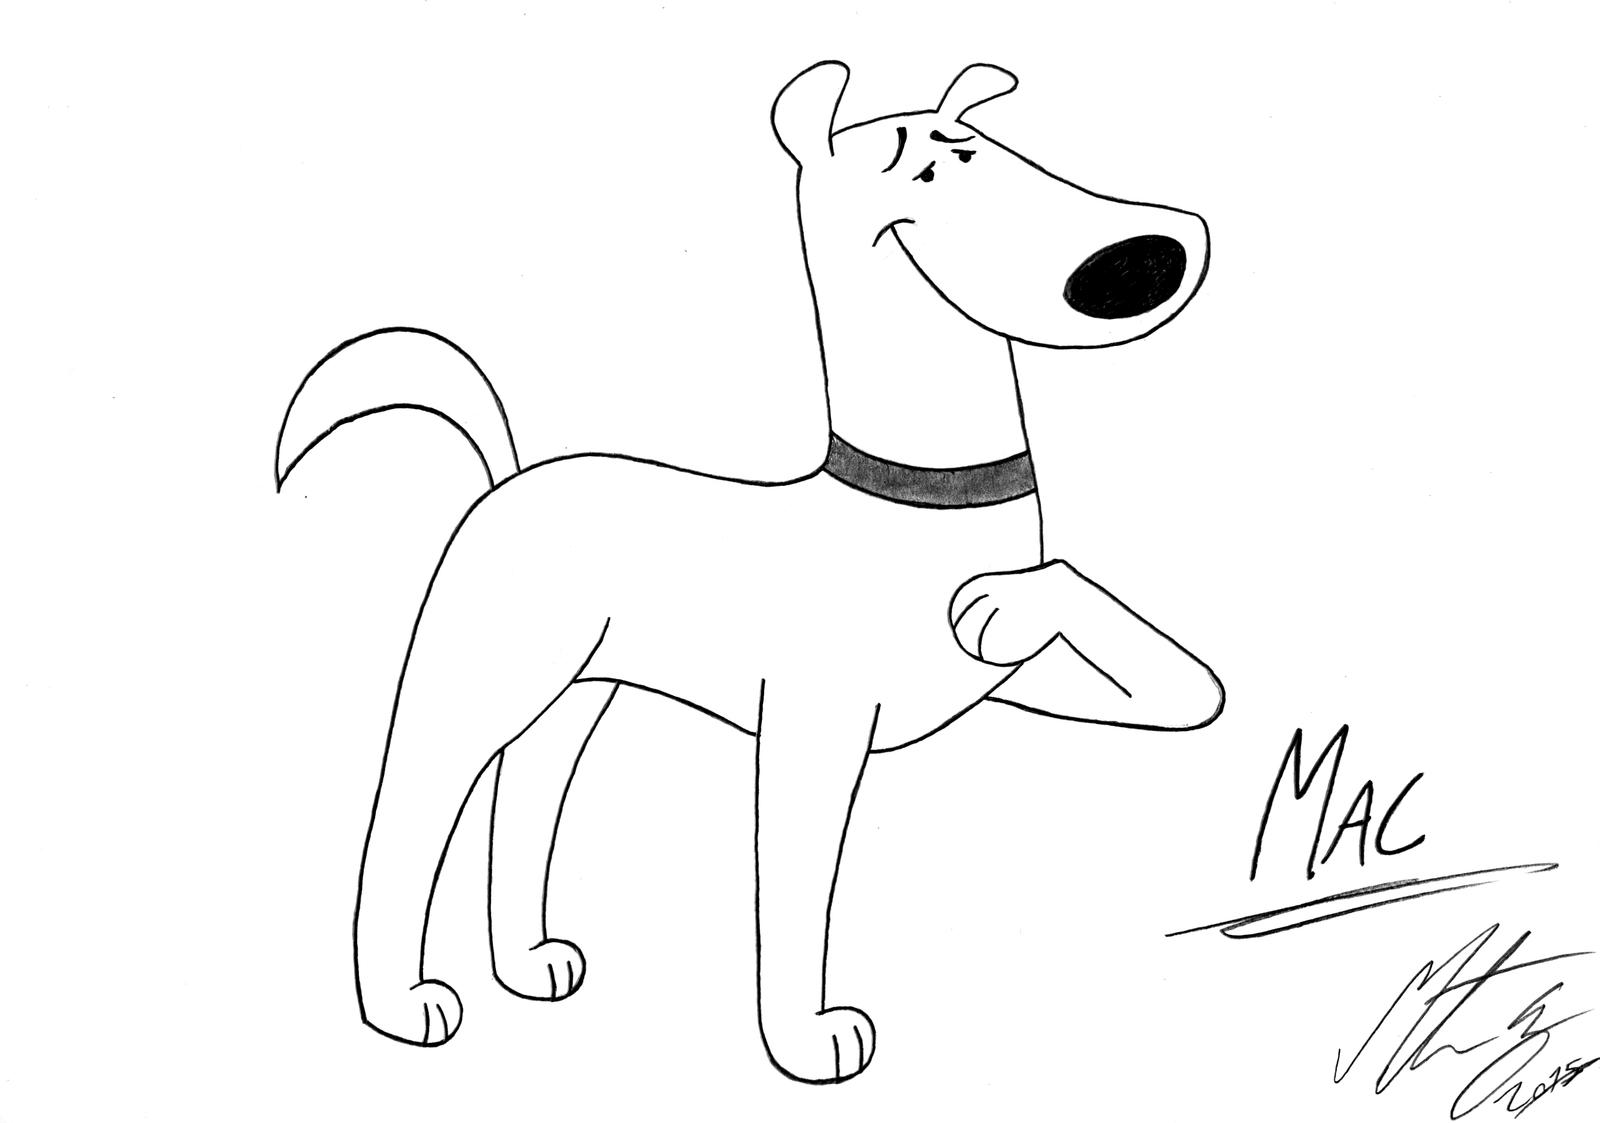 Clifford The Big Red Dog Mac By Morteneng21 On Deviantart